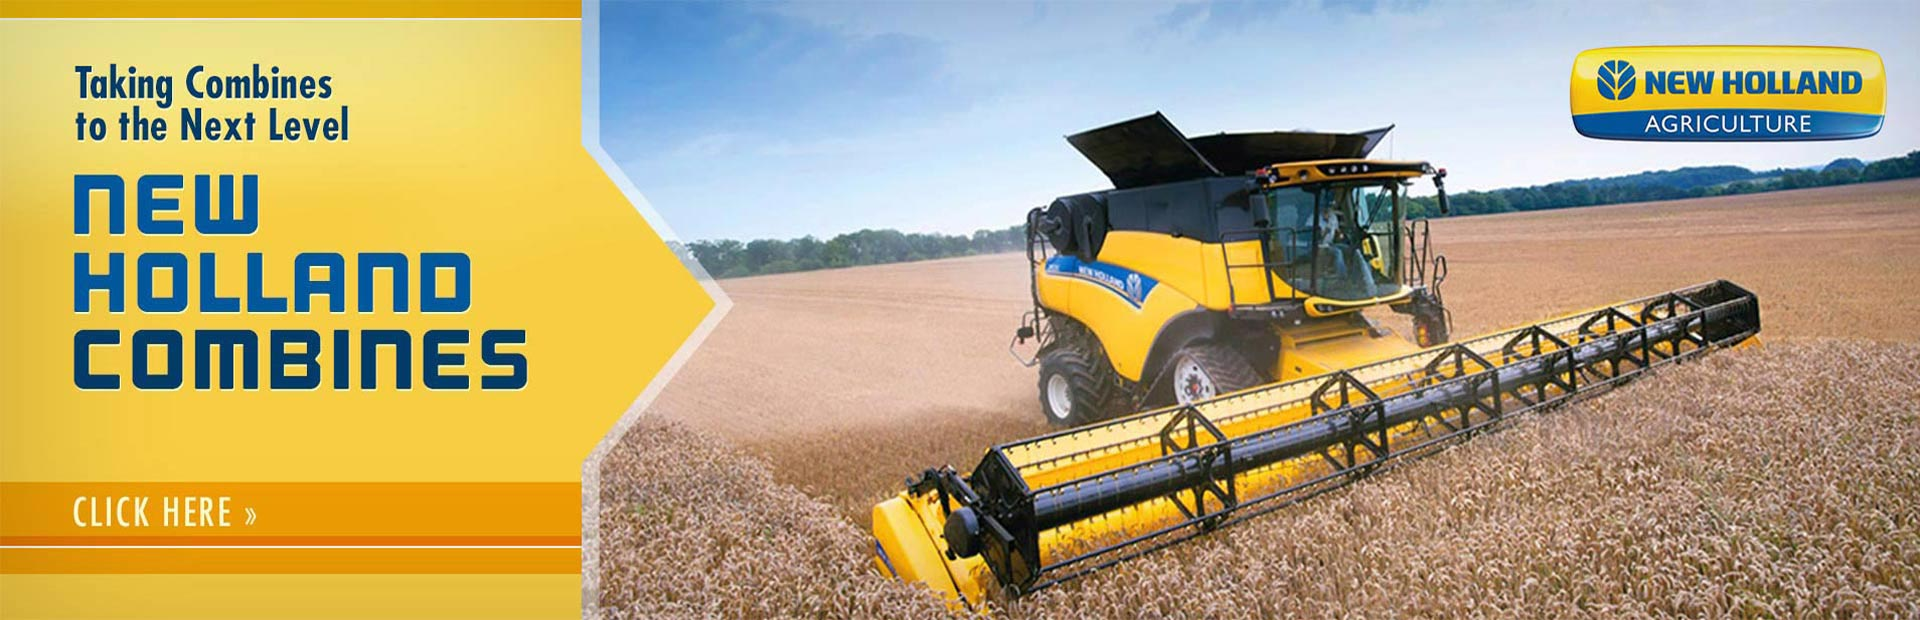 New Holland takes combines to the next level! Click here to view our selection.